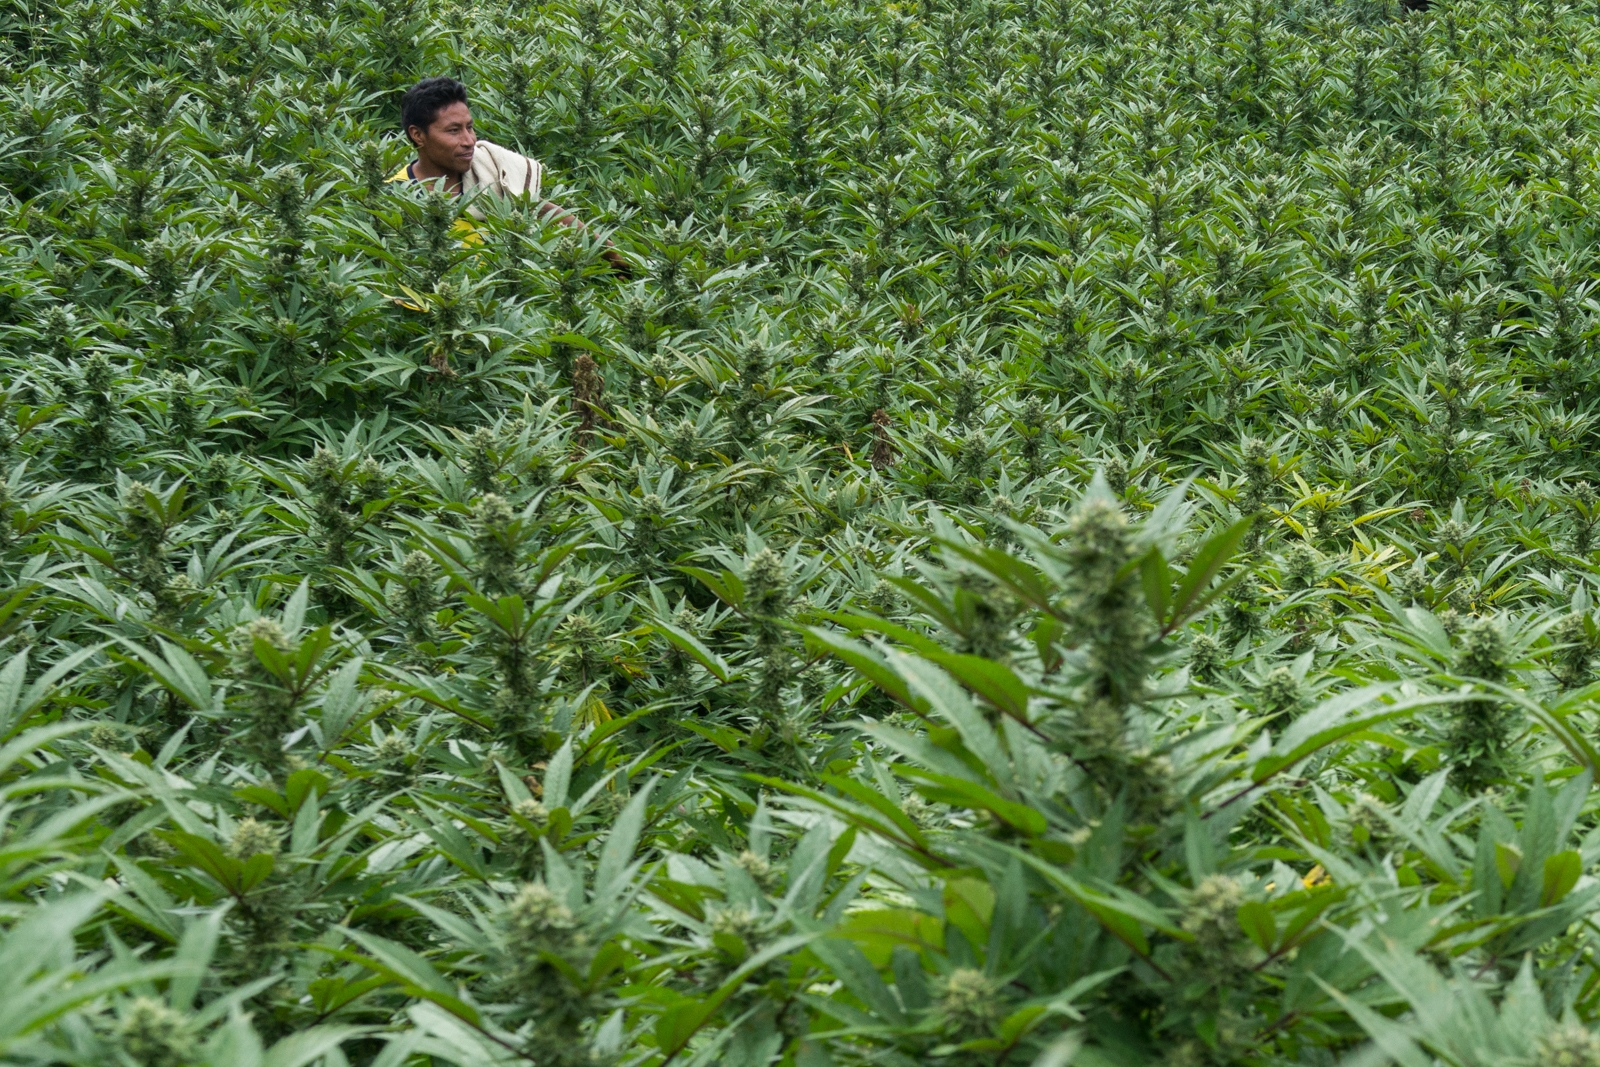 Jose Emilio walks through one of his Marijuana fields in Toribio, this plants have 3 months of growth and soon will be ready to get cut and dried.